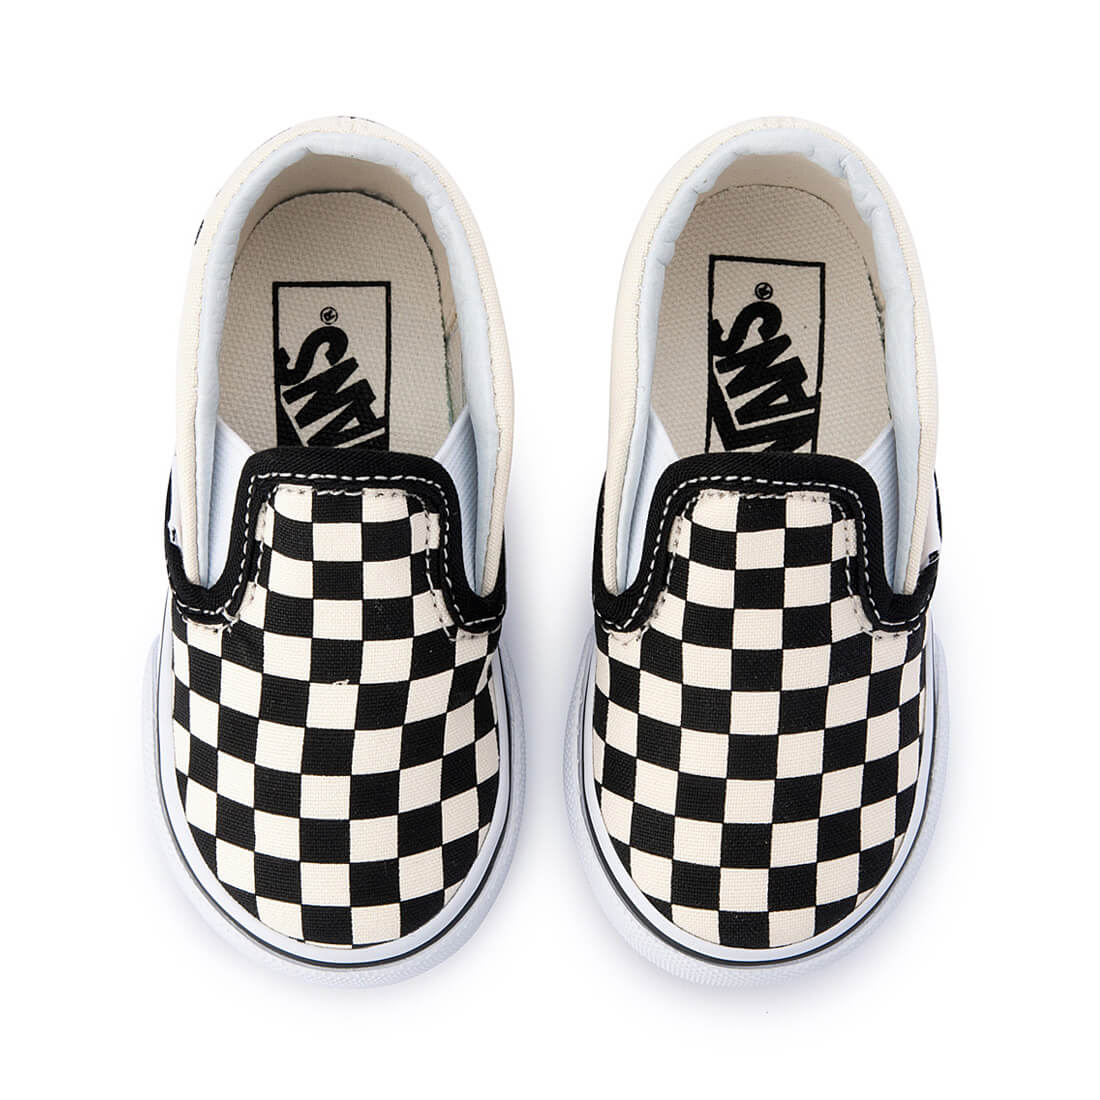 Vans Toddler Classic Slip On – Black/White Checkerboard top